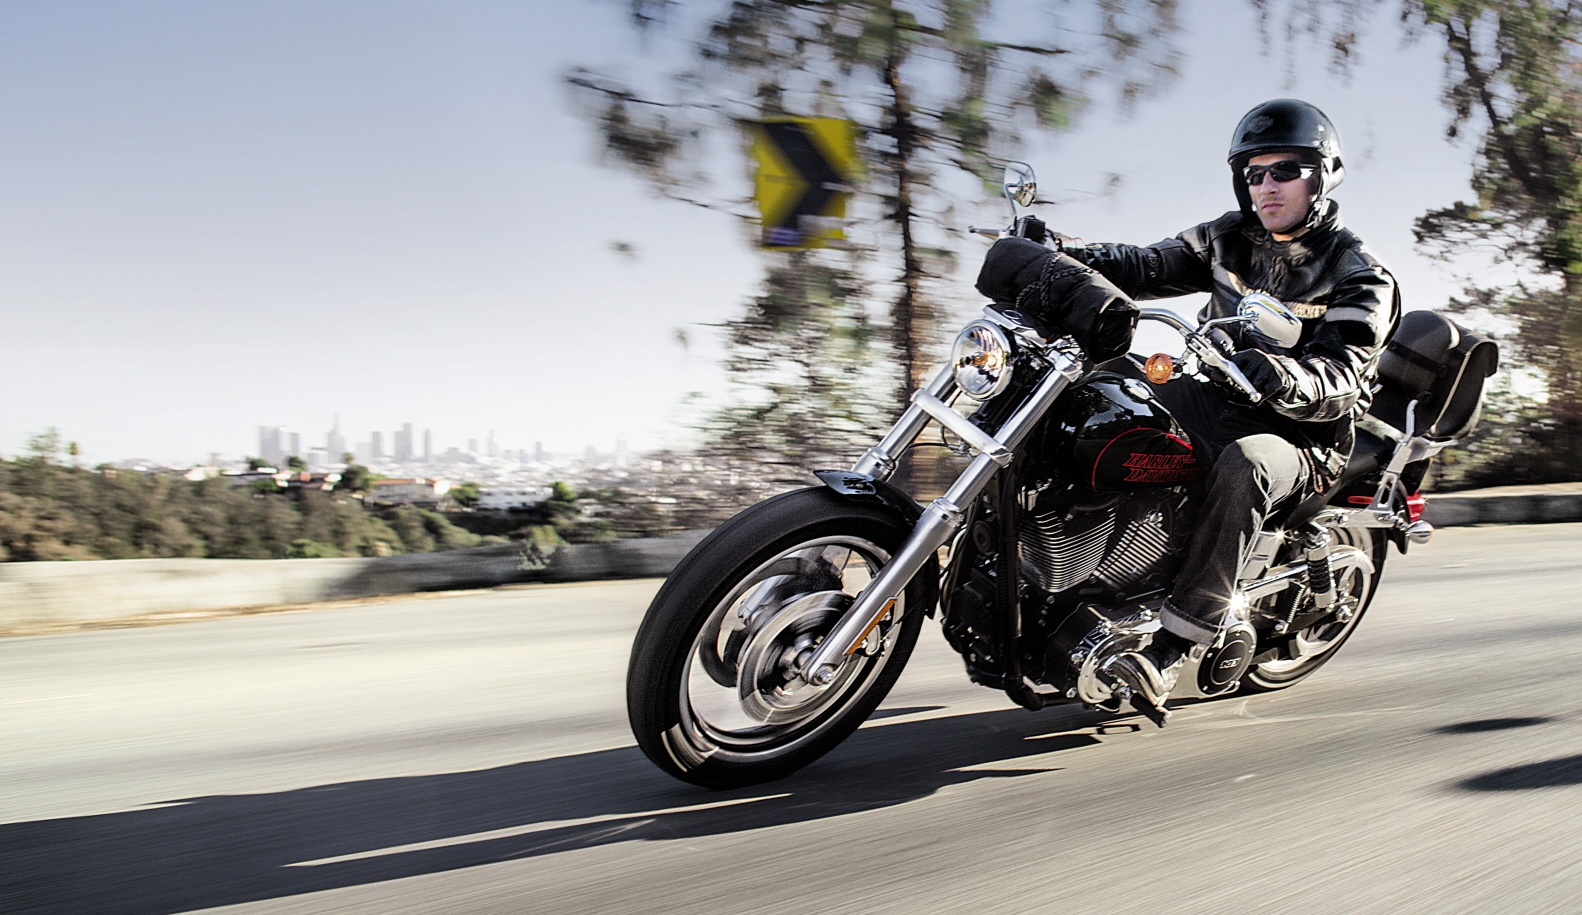 Harley Riders: HARLEY-DAVIDSON Busts Out Two More Bikes